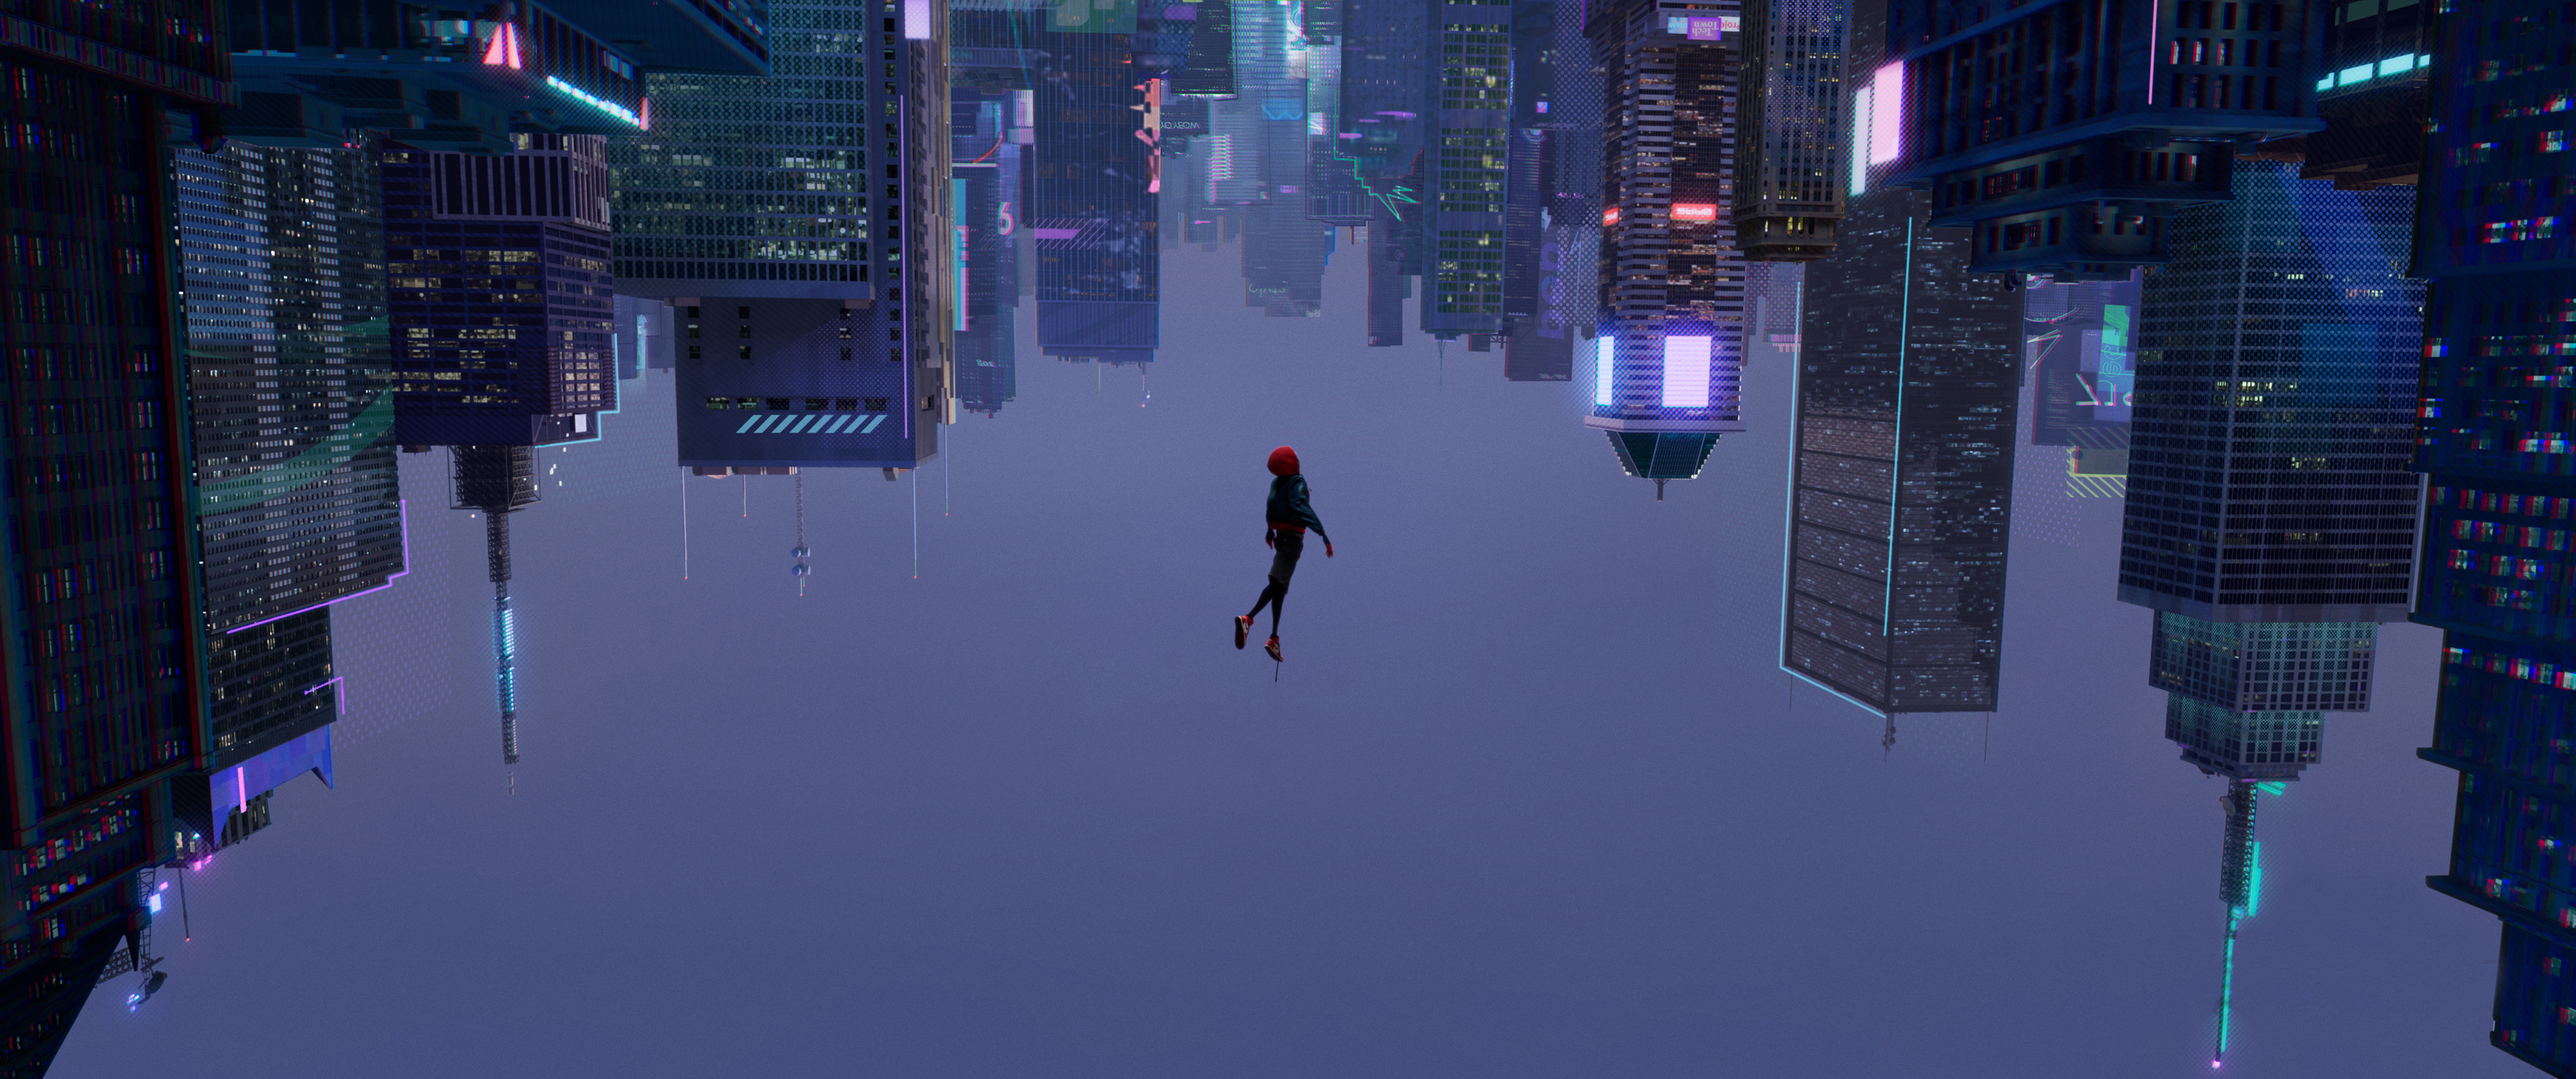 Spiderman Into The Spider Verse 2018 Movie Hd Movies 4k Wallpapers